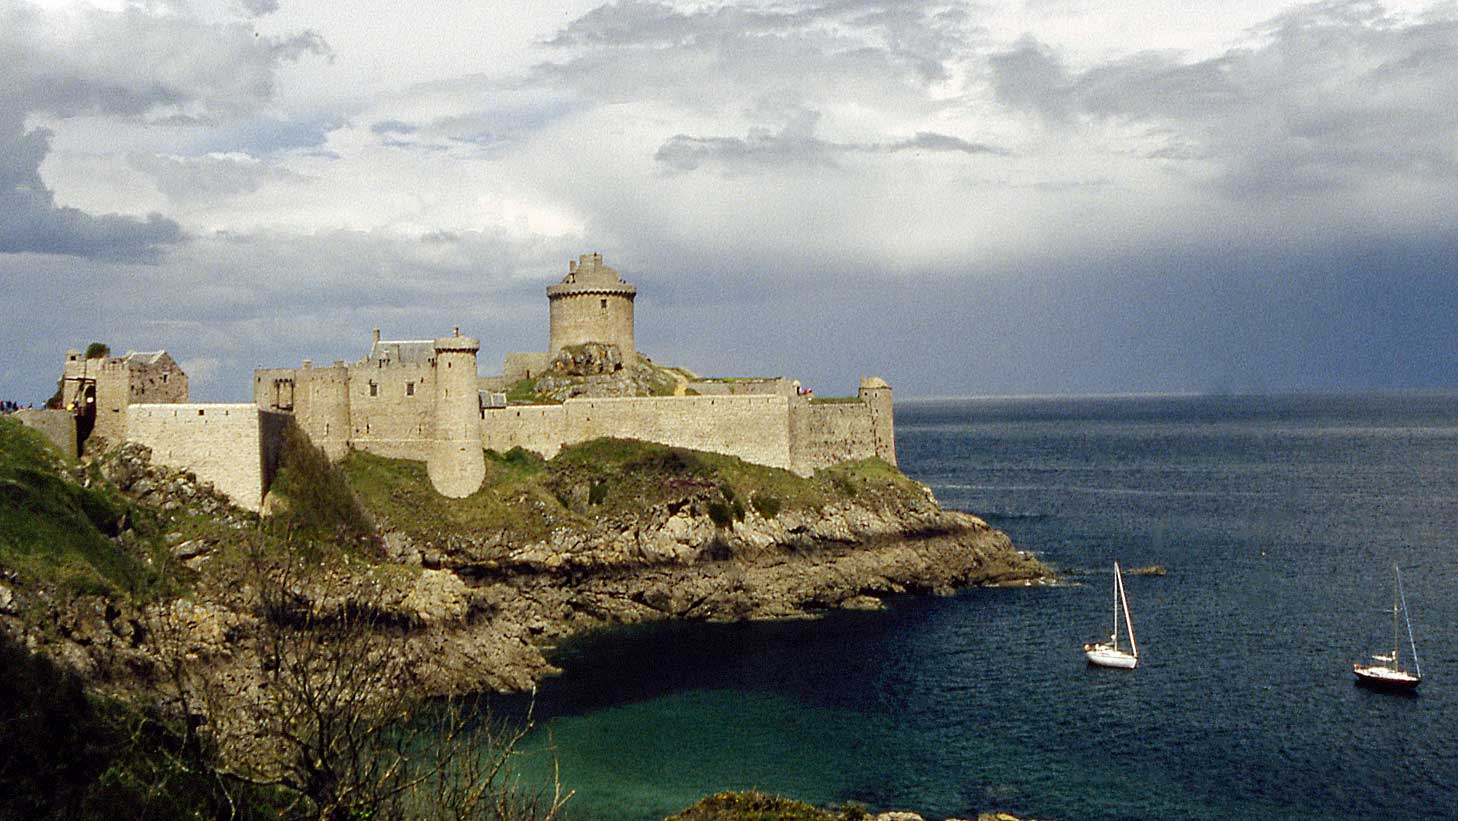 Le Fort la Latte le 23 avril 2000